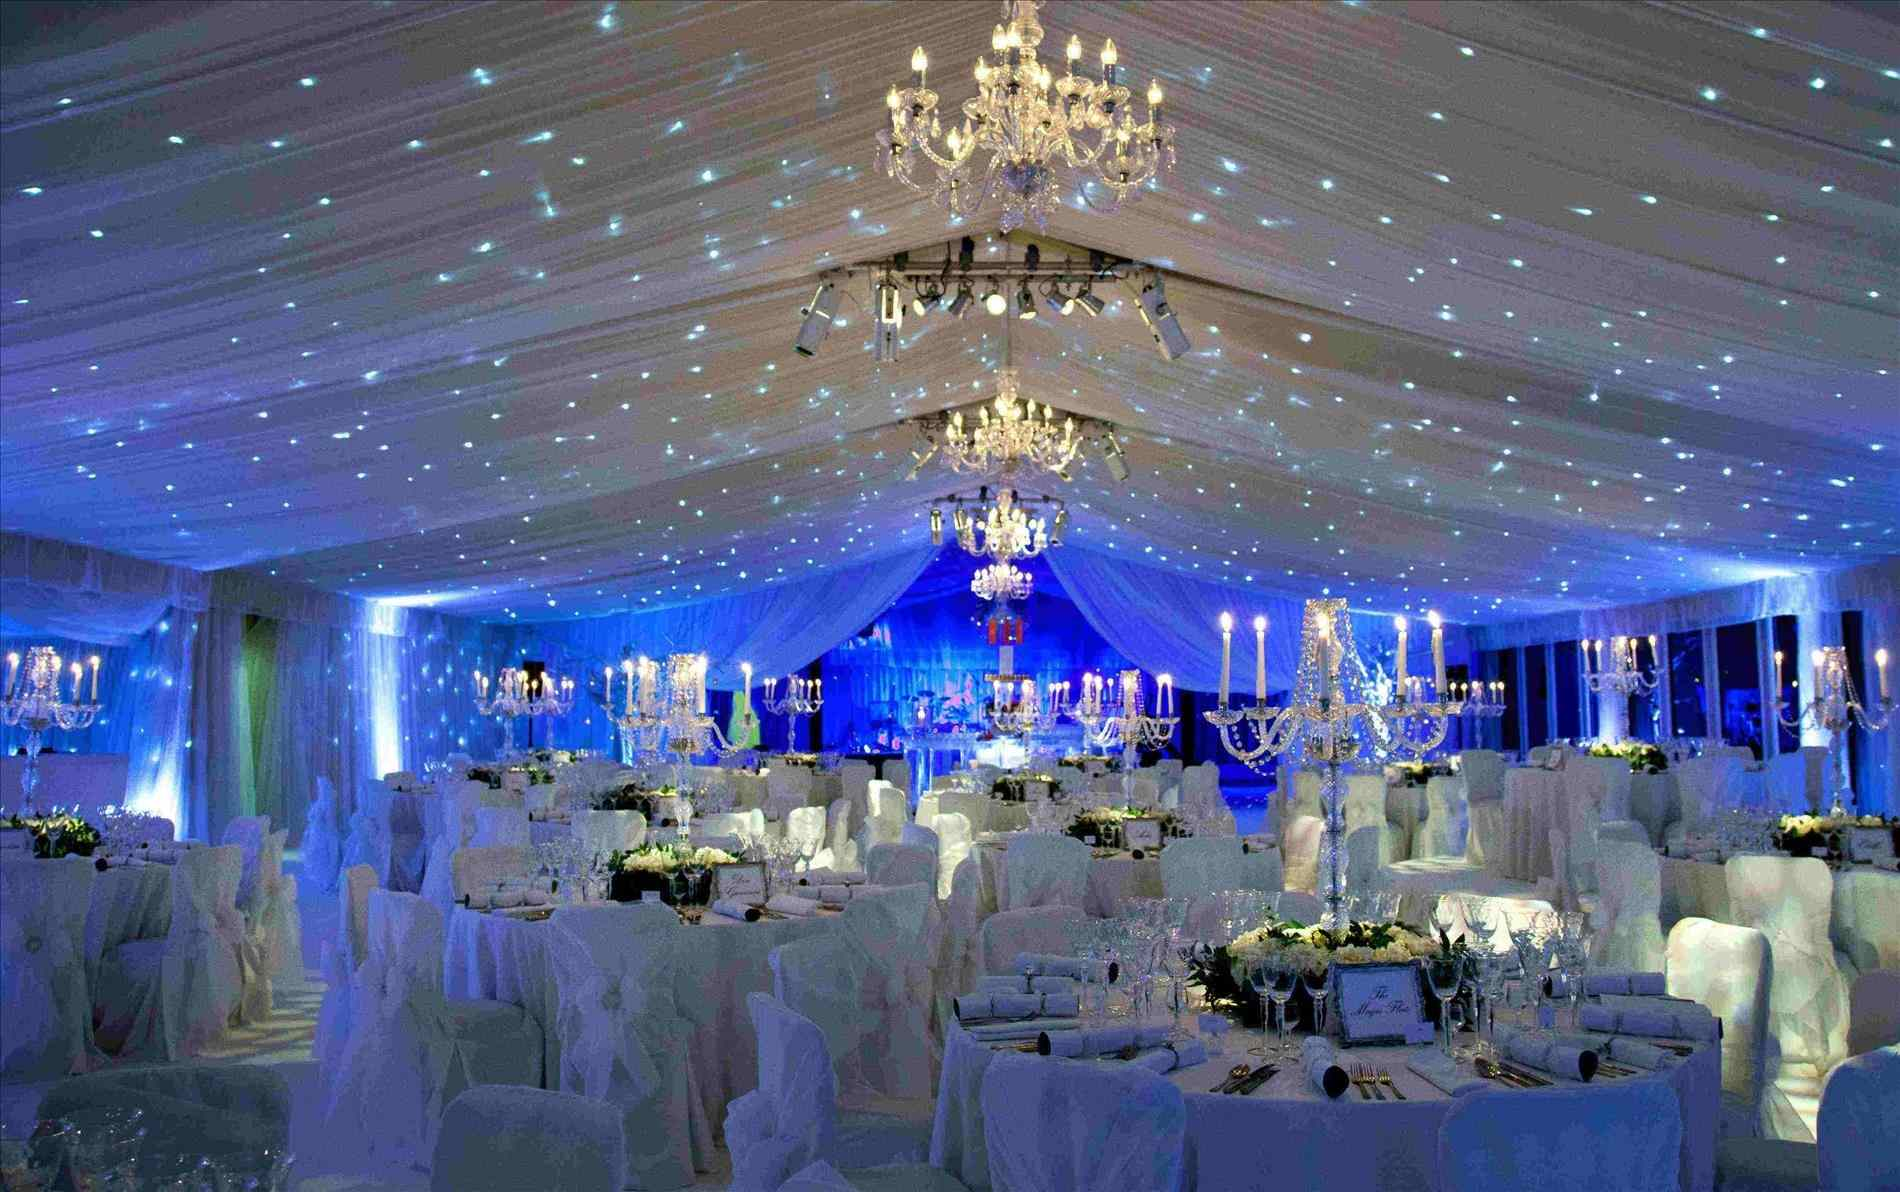 Winter Themed Wedding Ideas-decorations-room-wonderland-wonderland-party-themes-for-adults-winter-theme-decorations-frozen-marshmallows